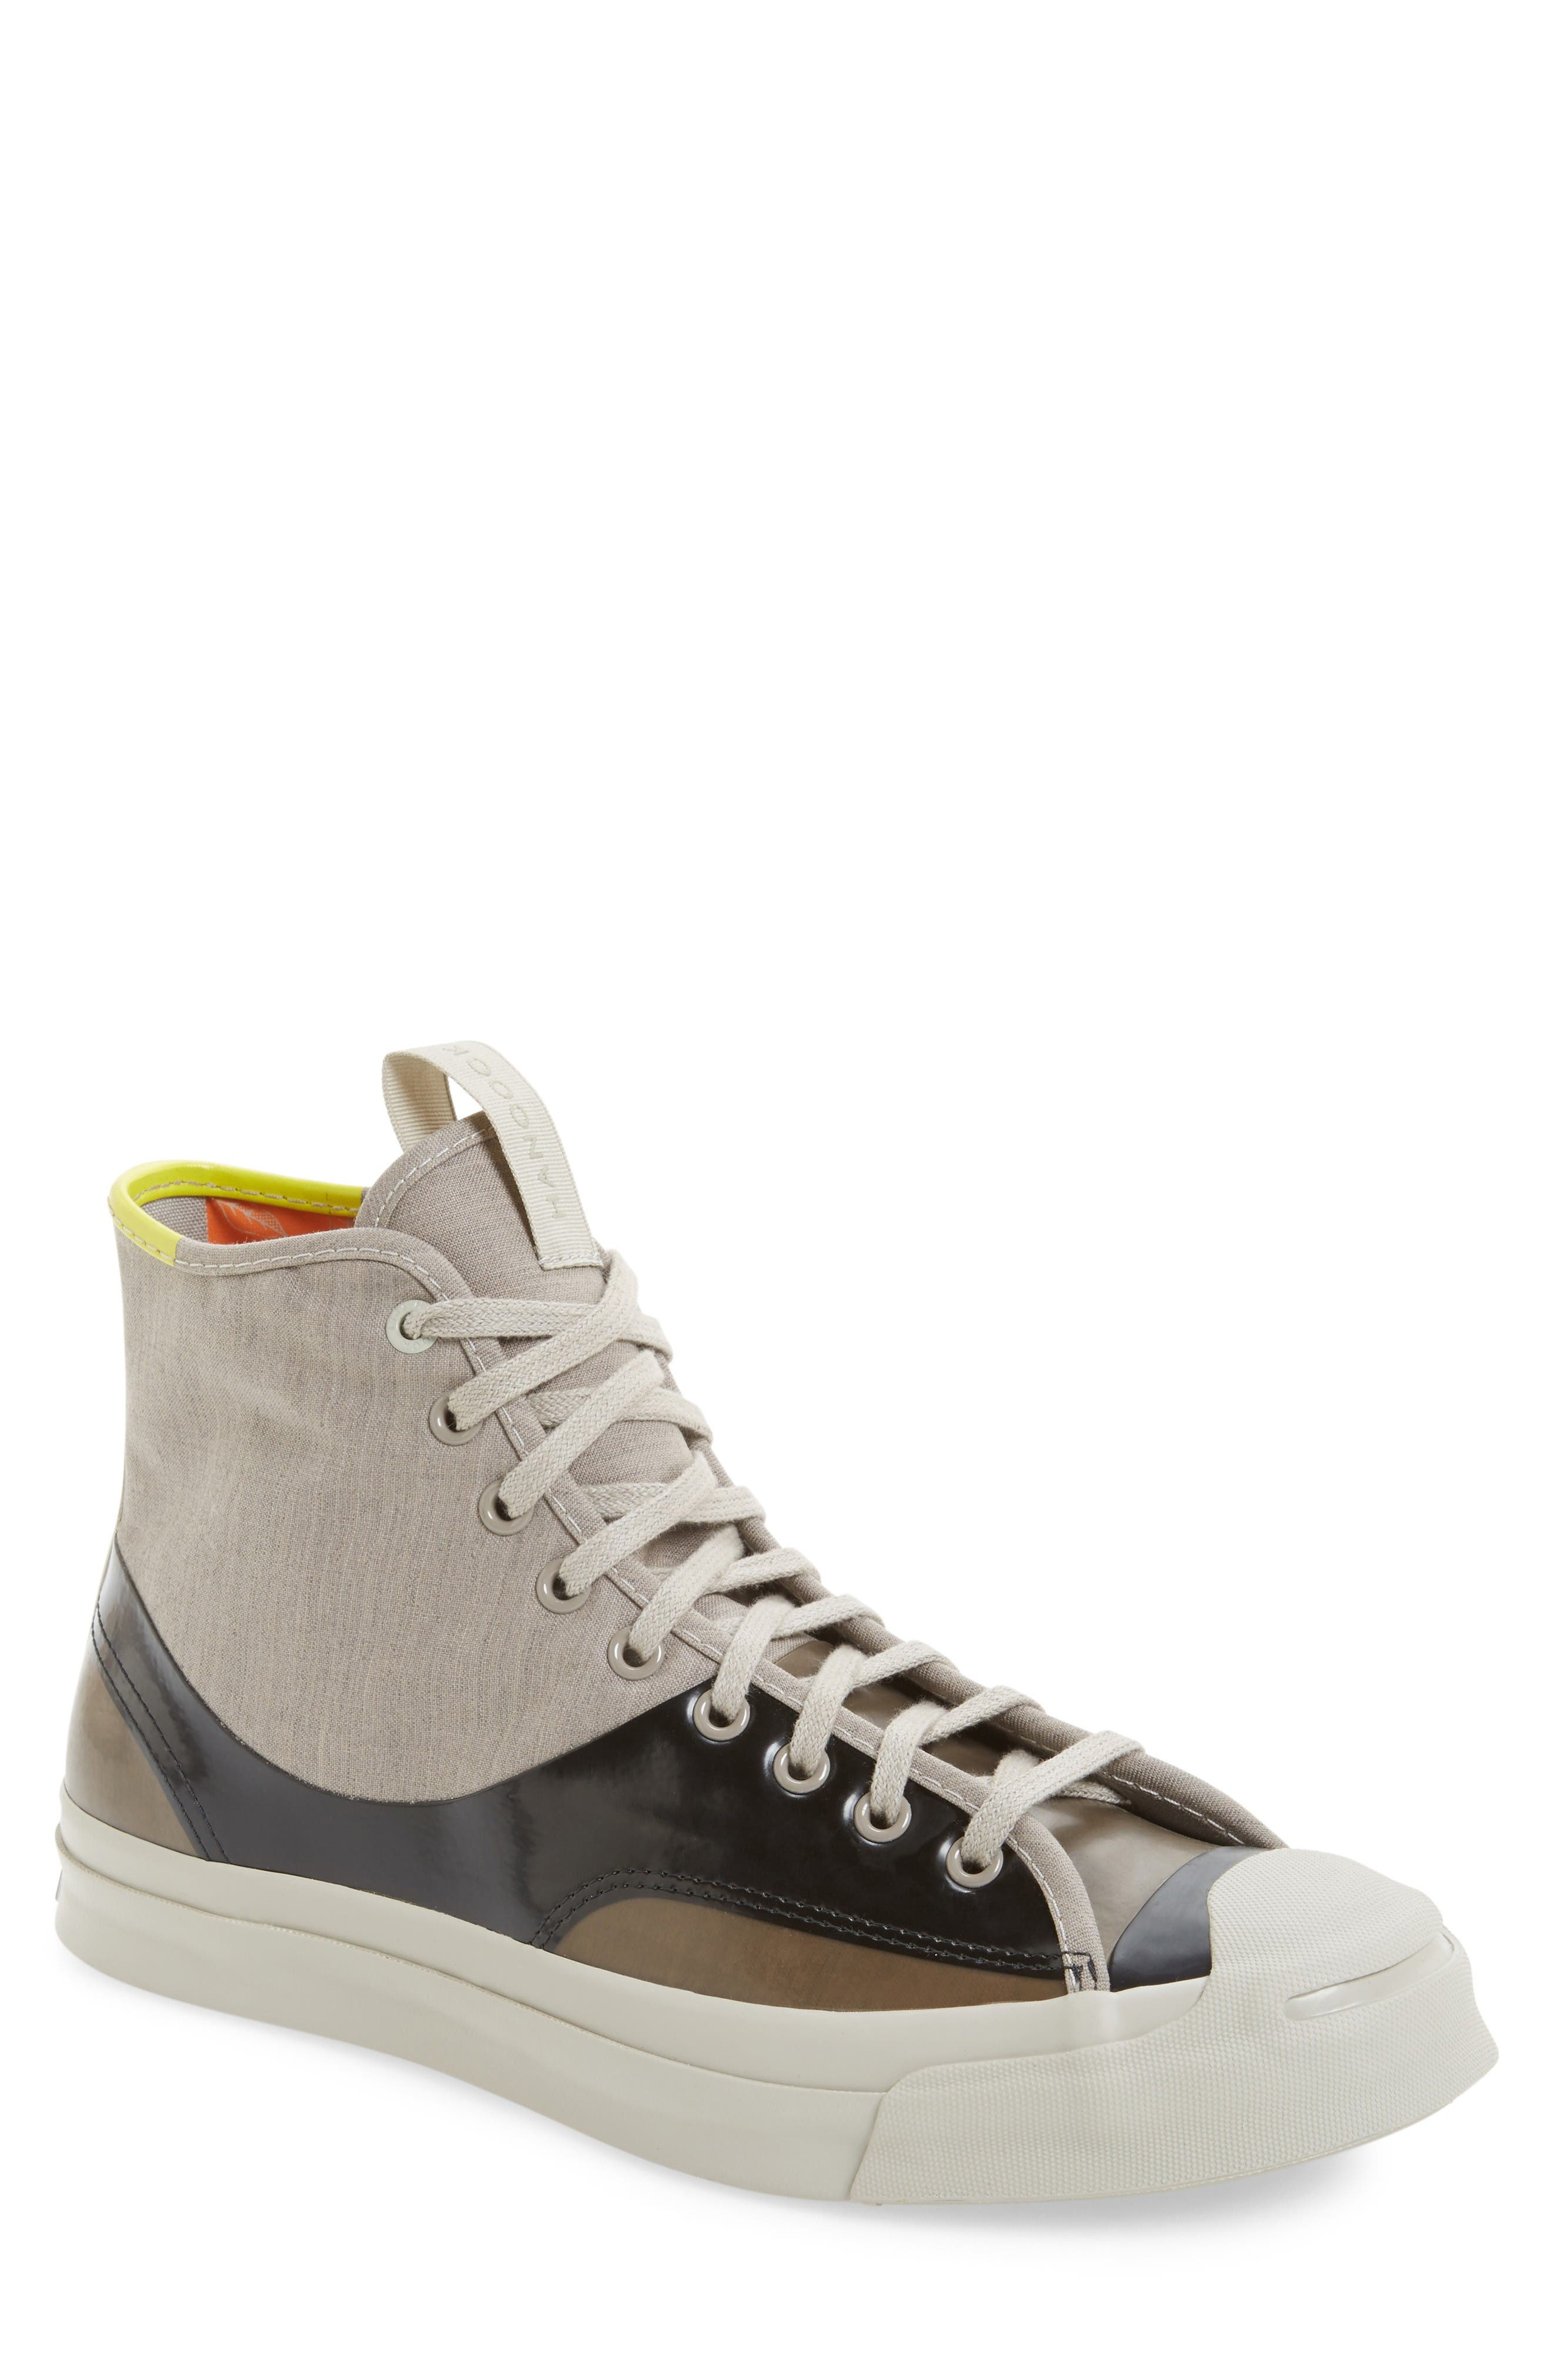 CONVERSE Jack Purcell 1st String Sneaker